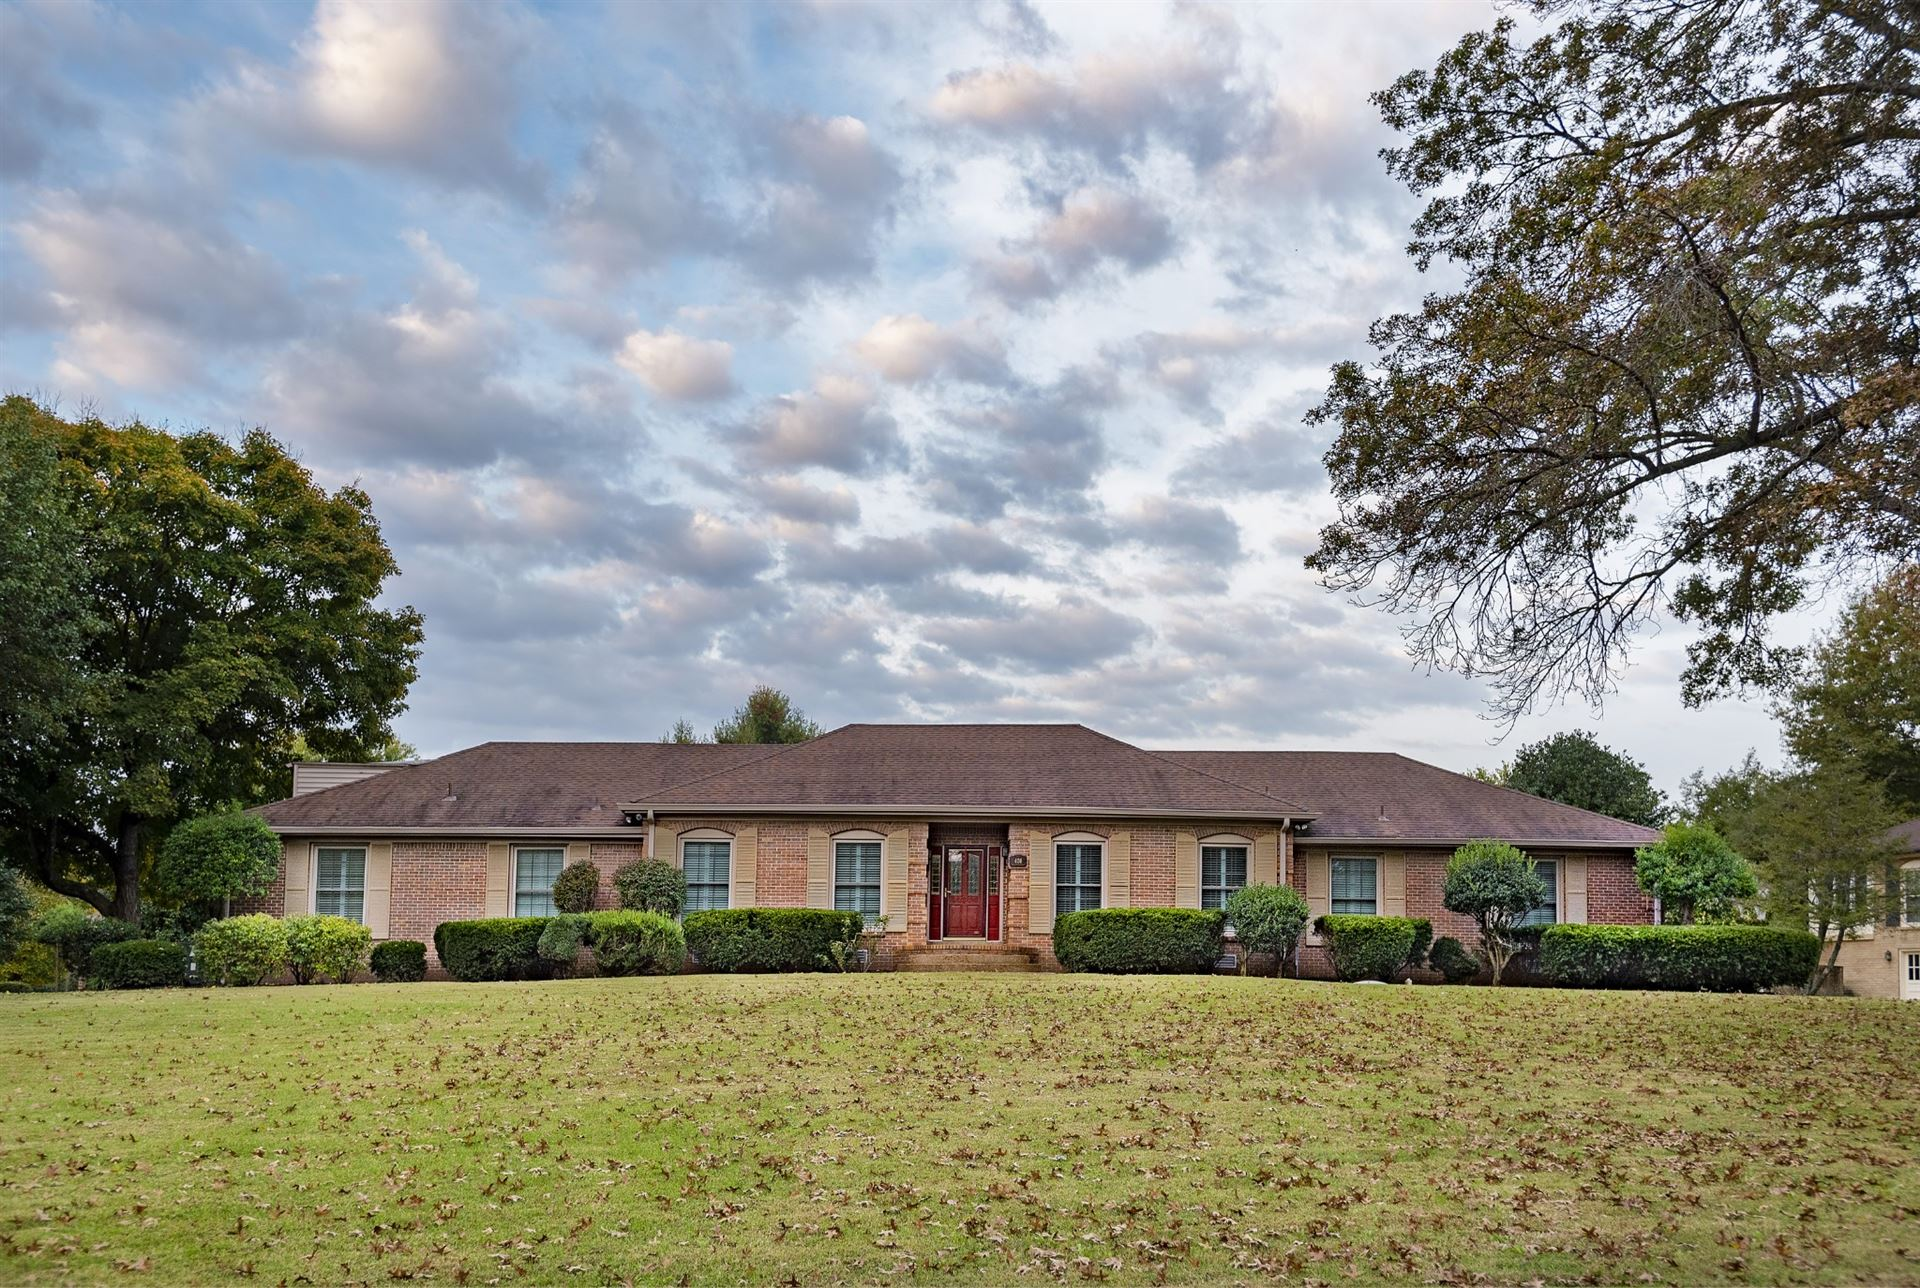 408 Rolling Mill Rd, Old Hickory, TN 37138 - MLS#: 2200181